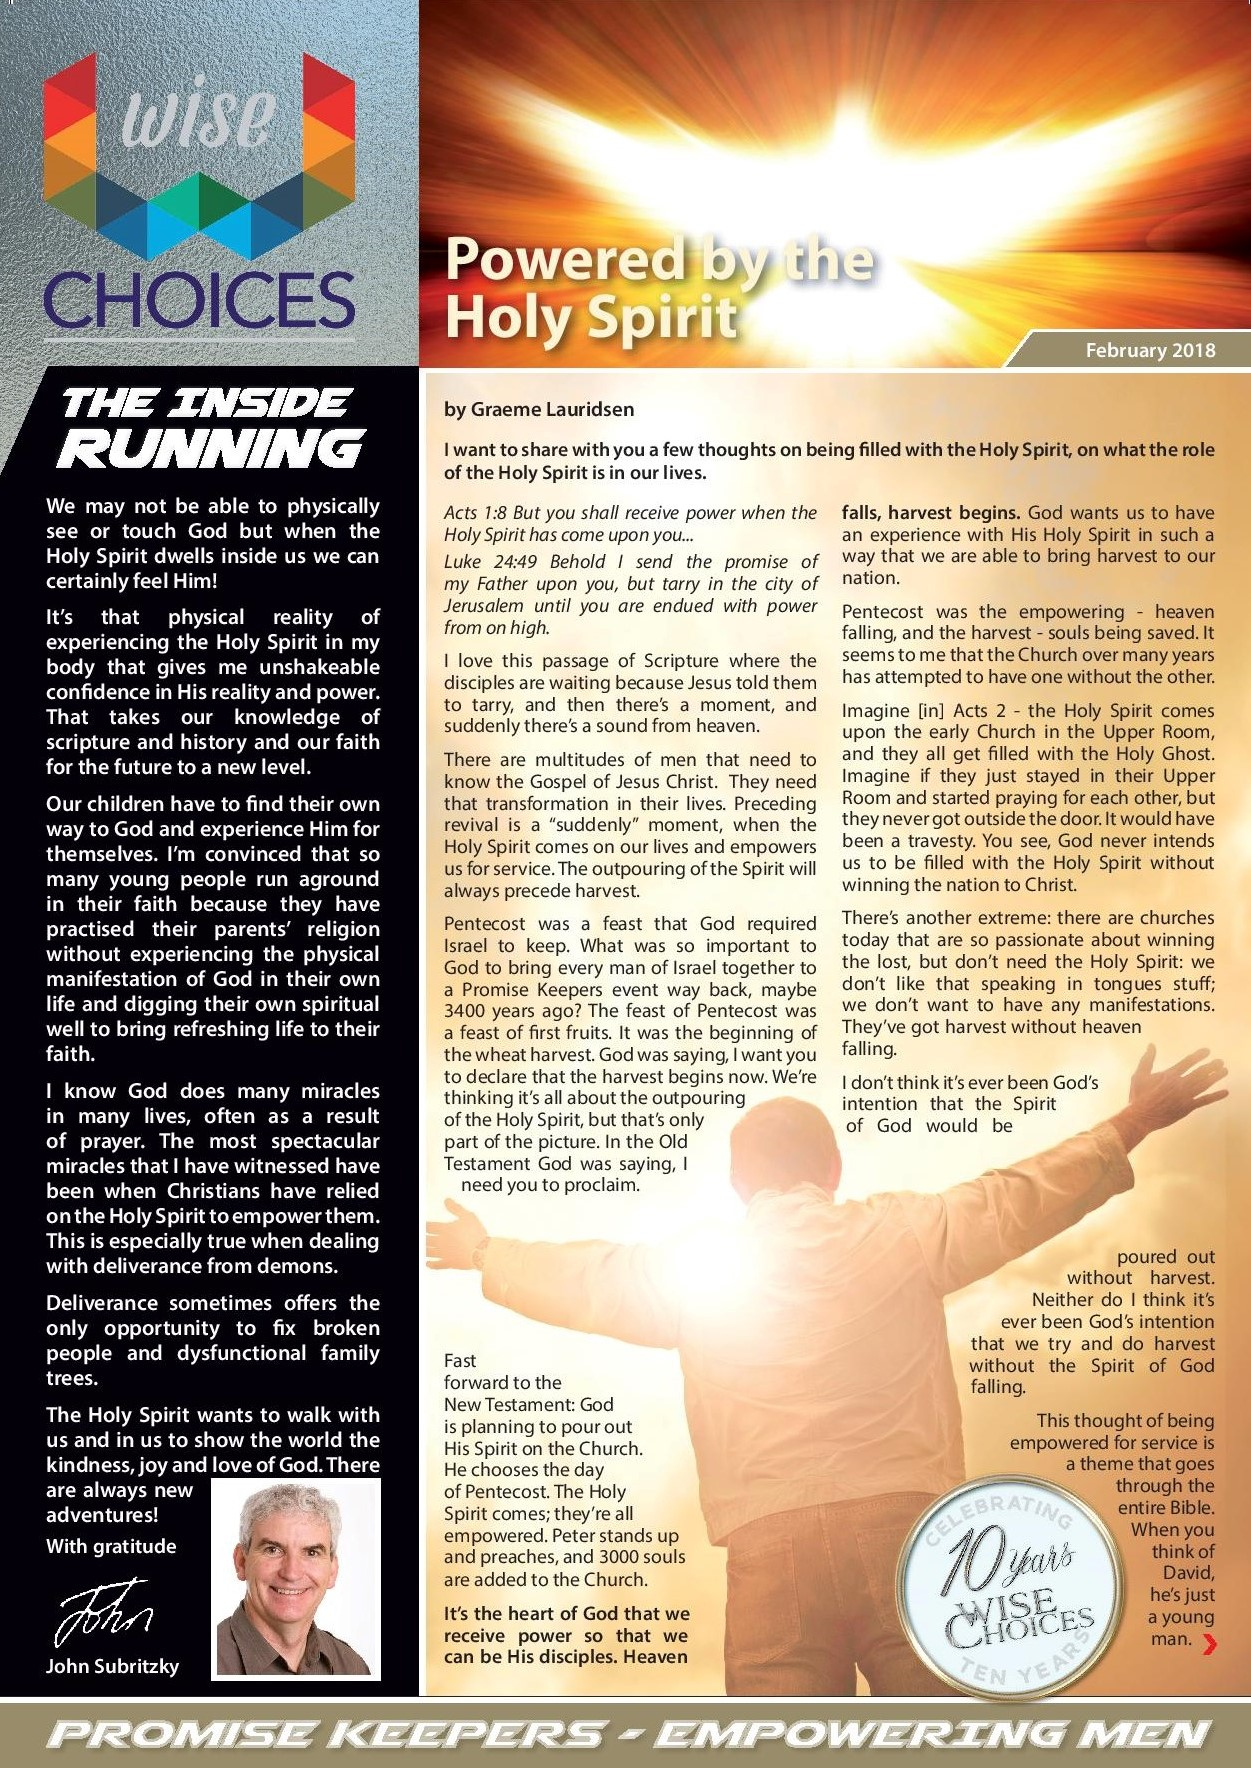 WC_Powered_Holy_Spirit